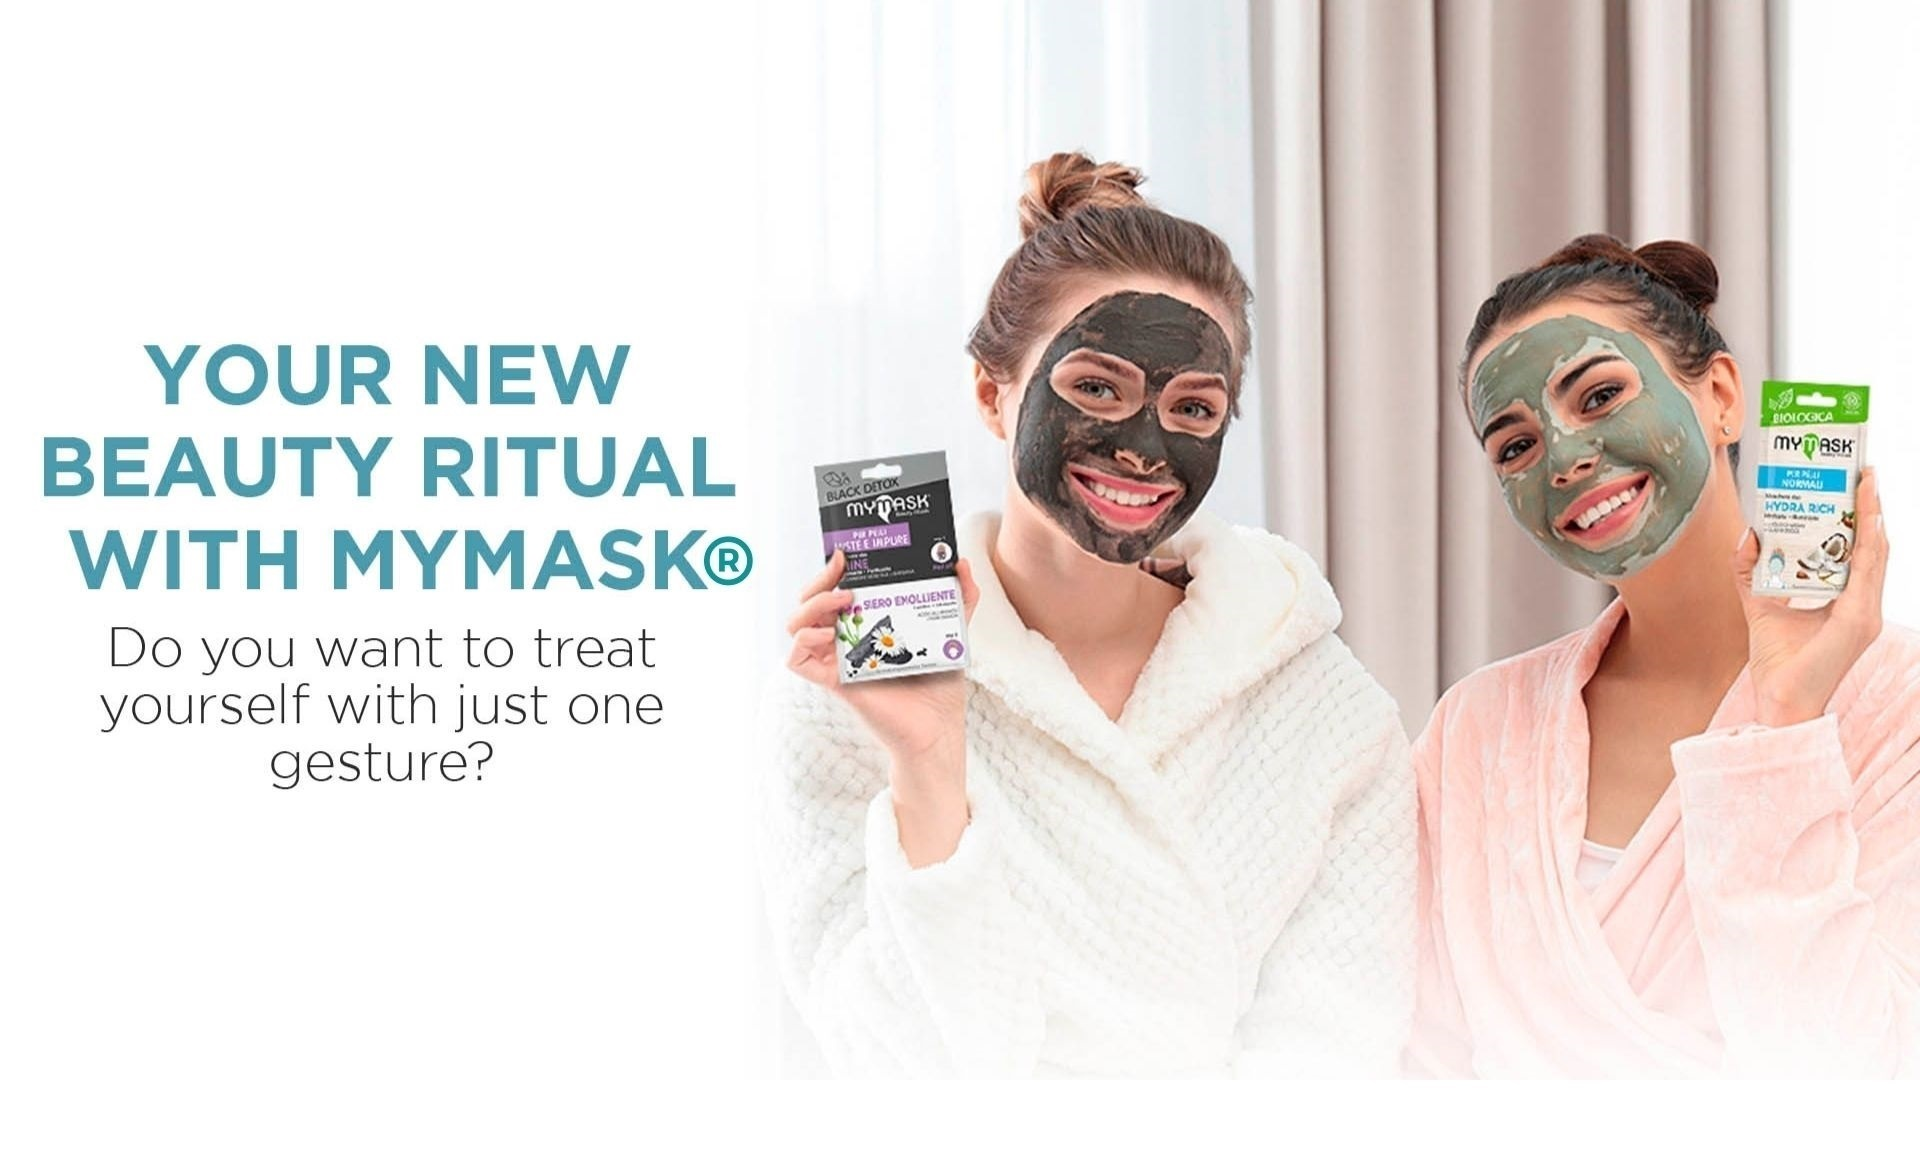 MY MASK® specifically designed for the daily beauty care.